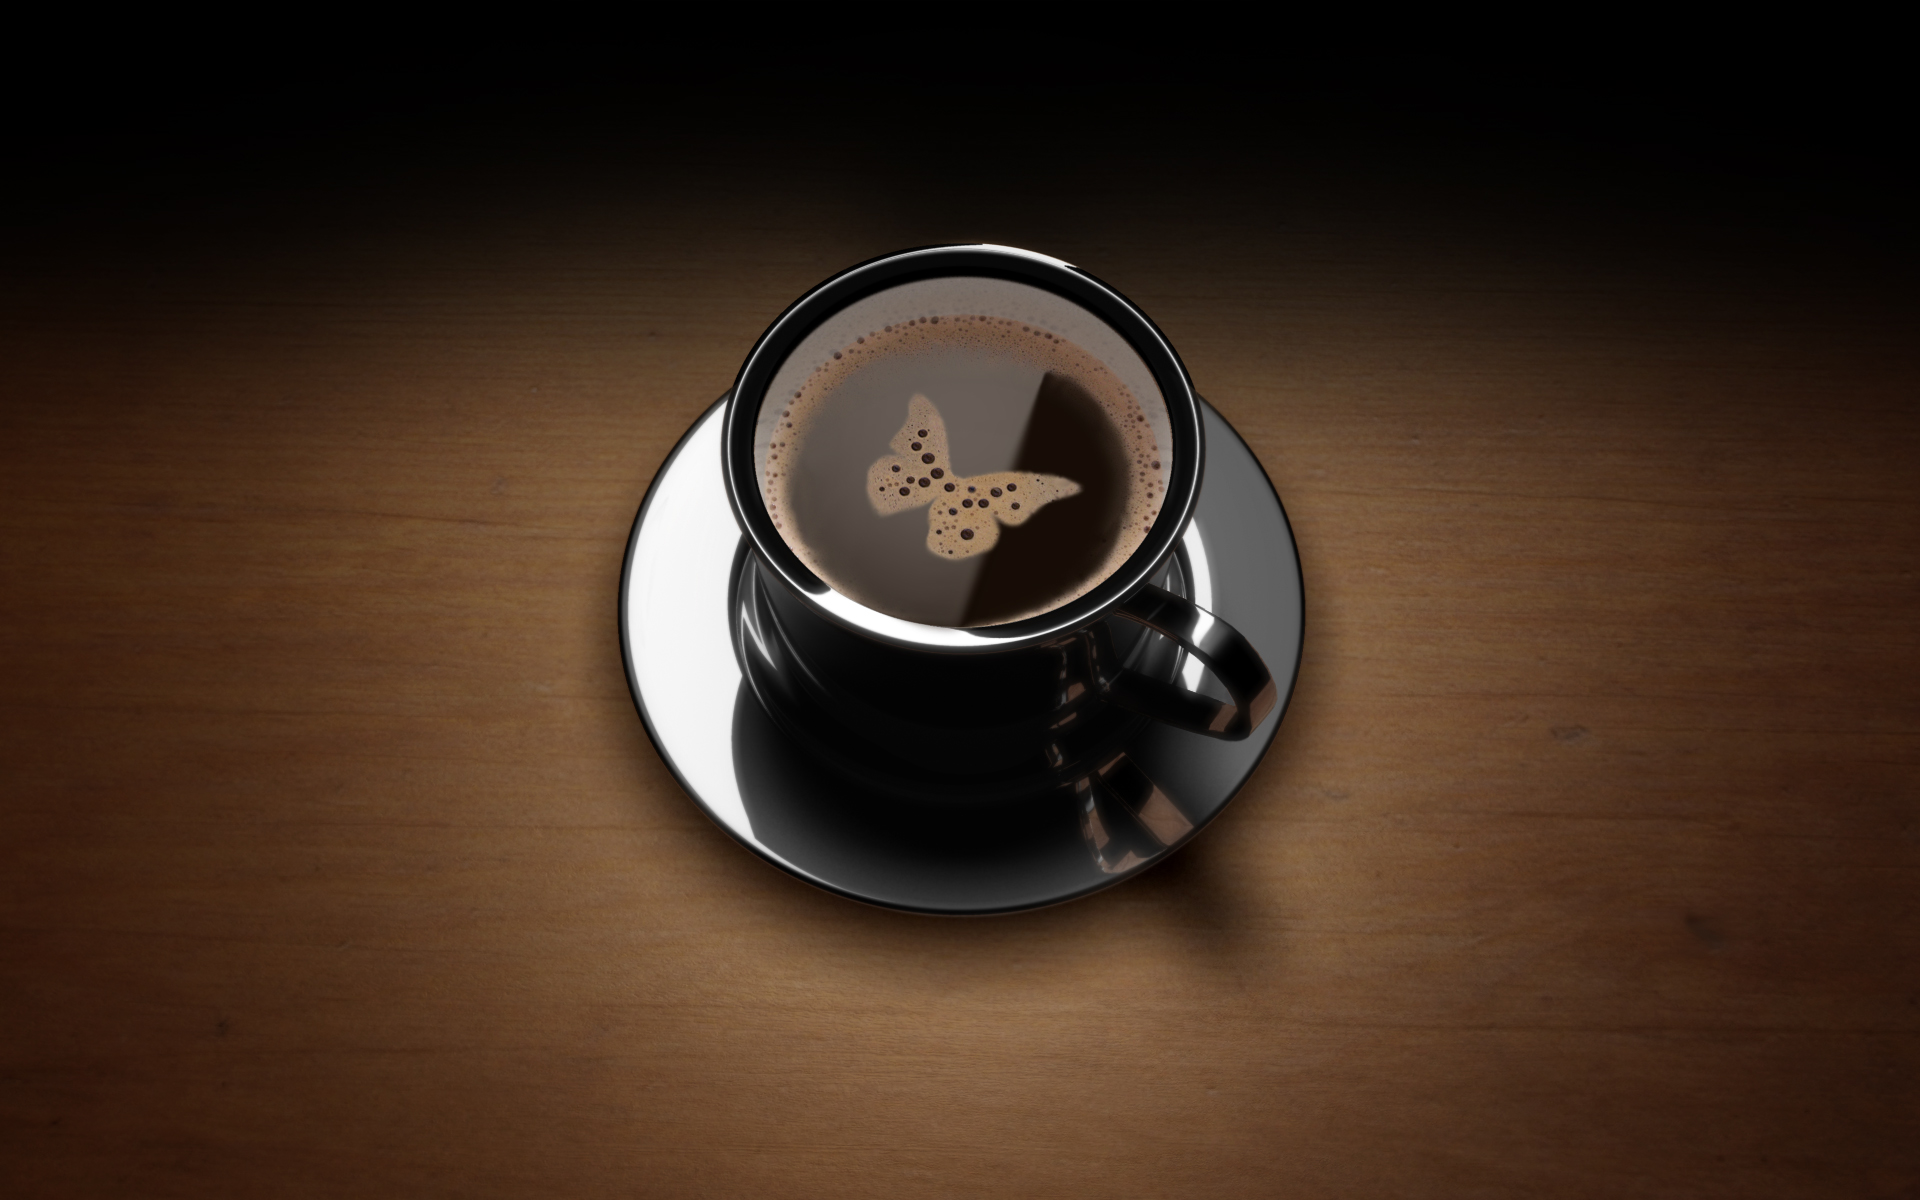 Alimento - Coffee  - Jave Cafe Coffee - Jave Cafe - Wish Beautiful Coffee - Mariposa - Brown - Java Fondo de Pantalla